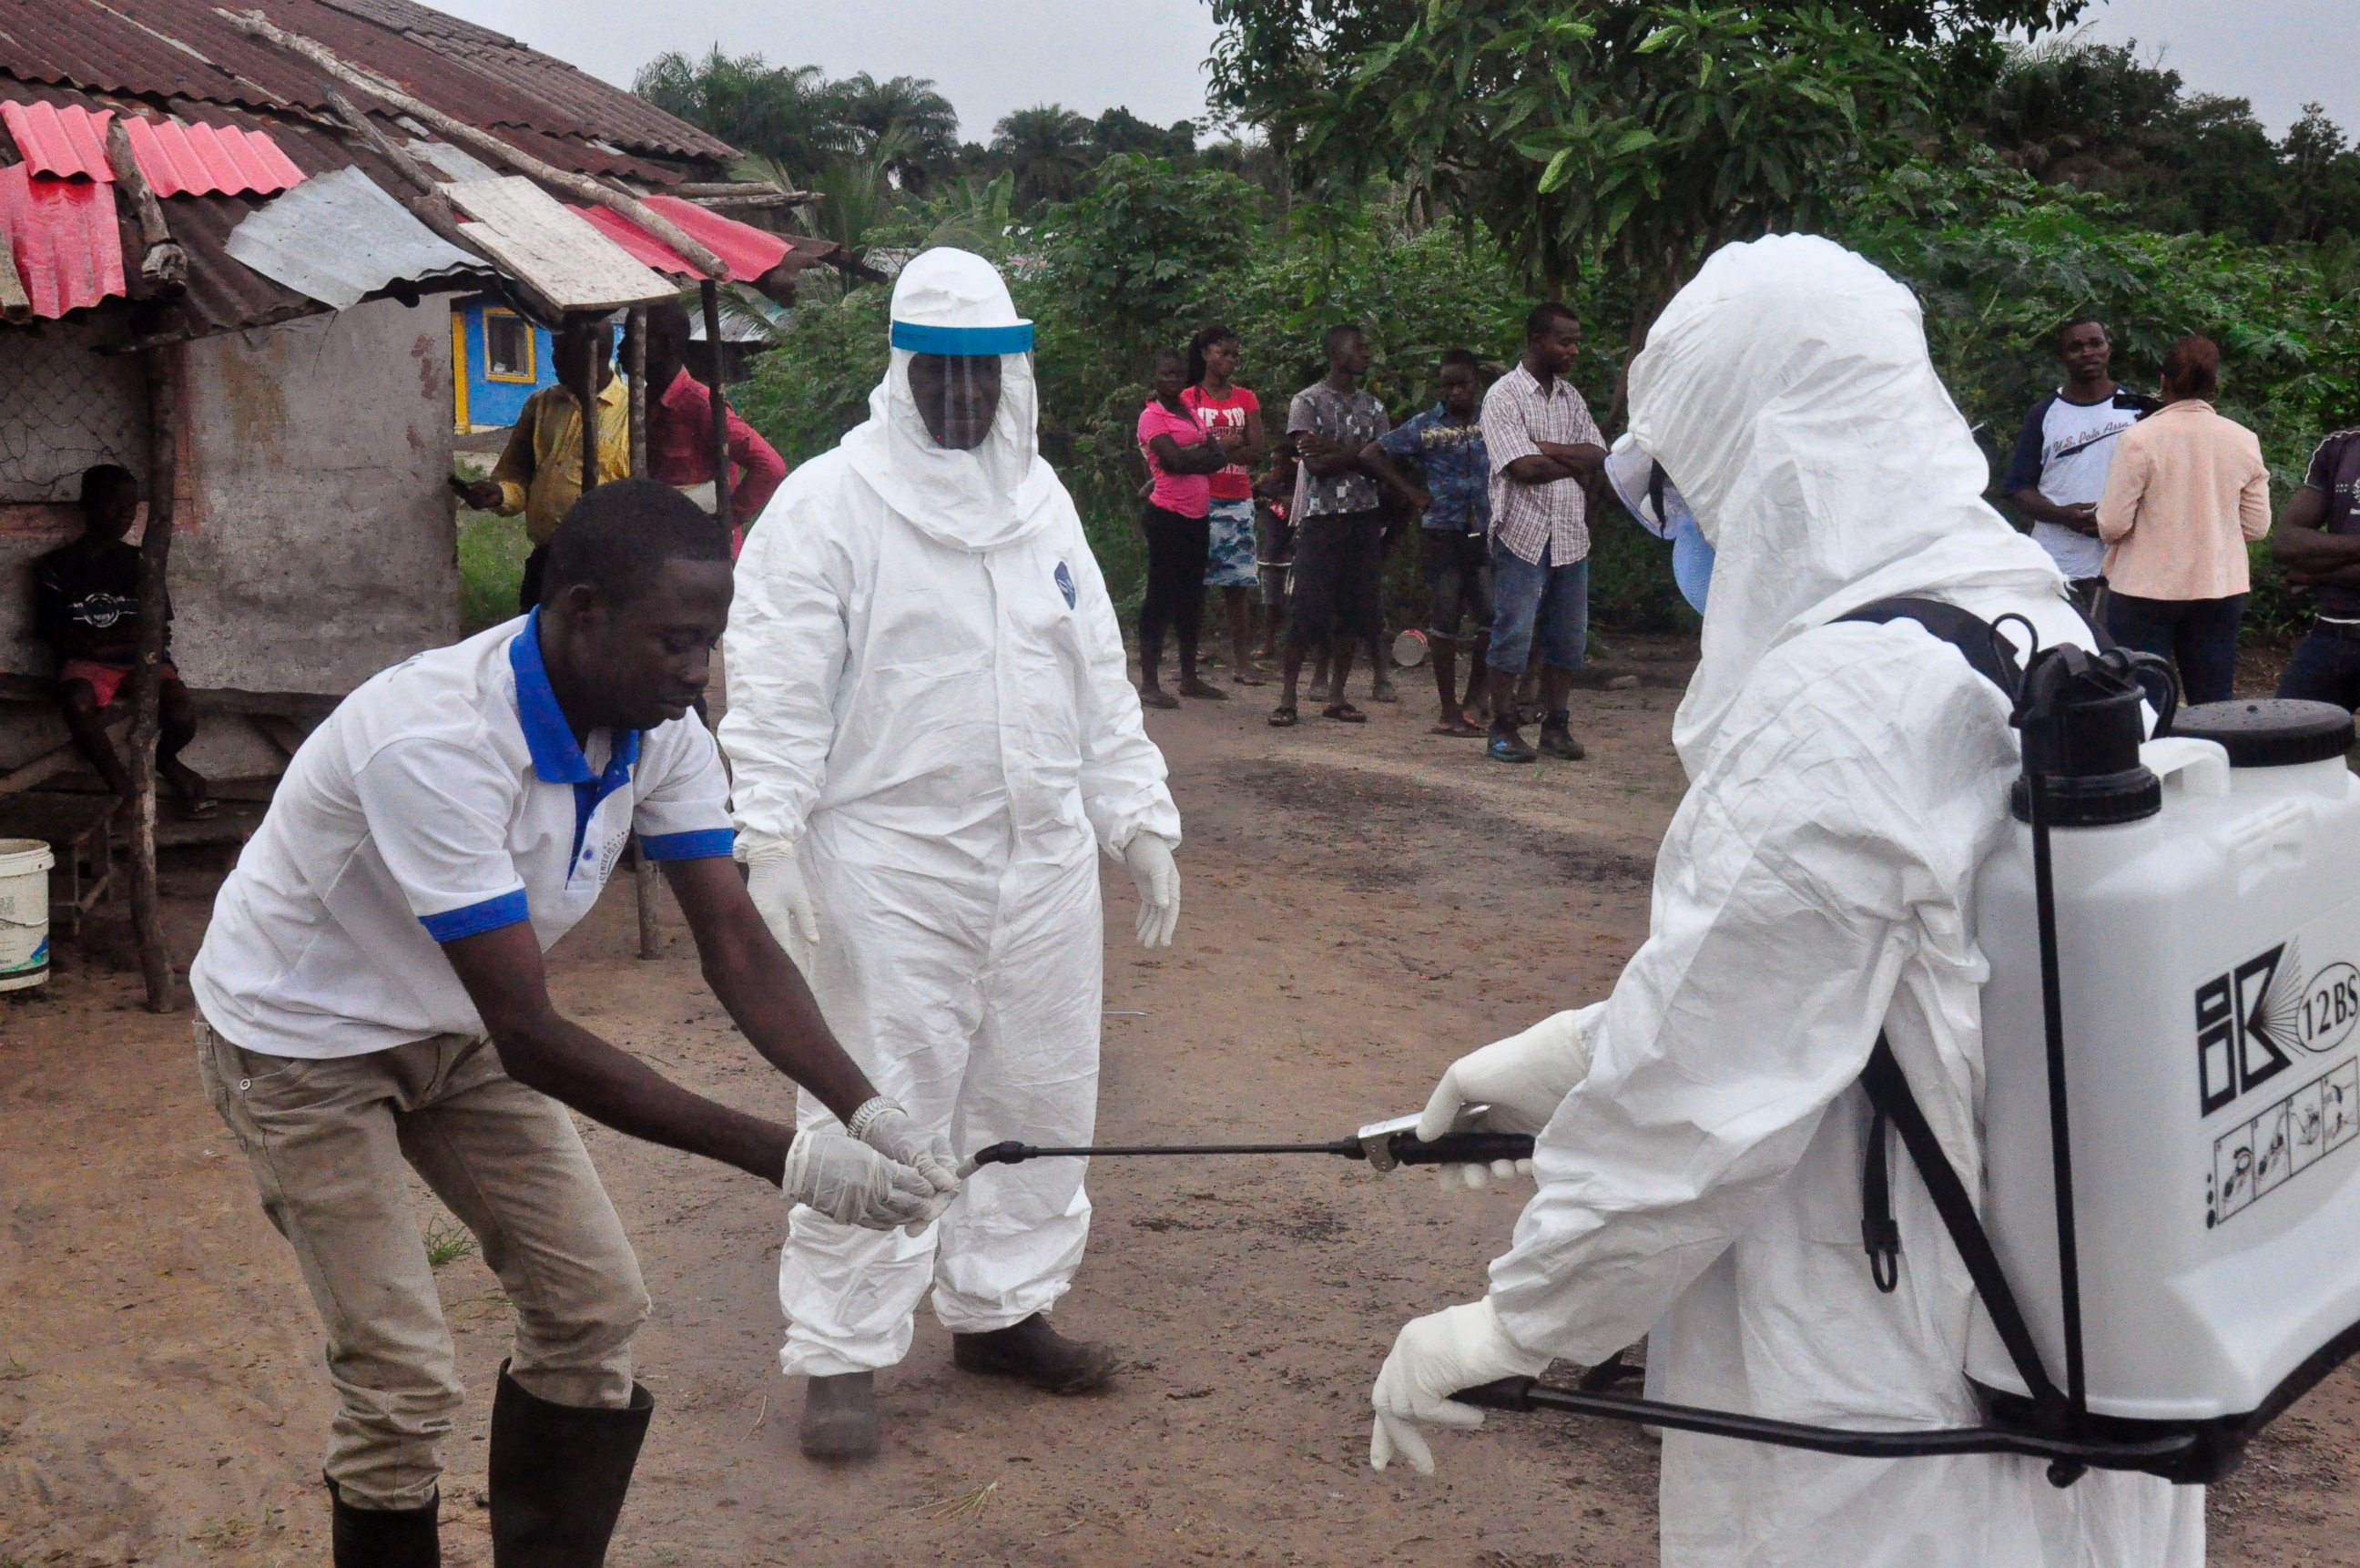 ebola virus what type of virus Ebola is the virus that causes ebola virus disease ebola virus disease is a serious illness that causes viral hemorrhagic fever and is deadly in up to 90 percent of cases ebola virus disease is a serious illness that causes viral hemorrhagic fever and is deadly in up to 90 percent of cases.